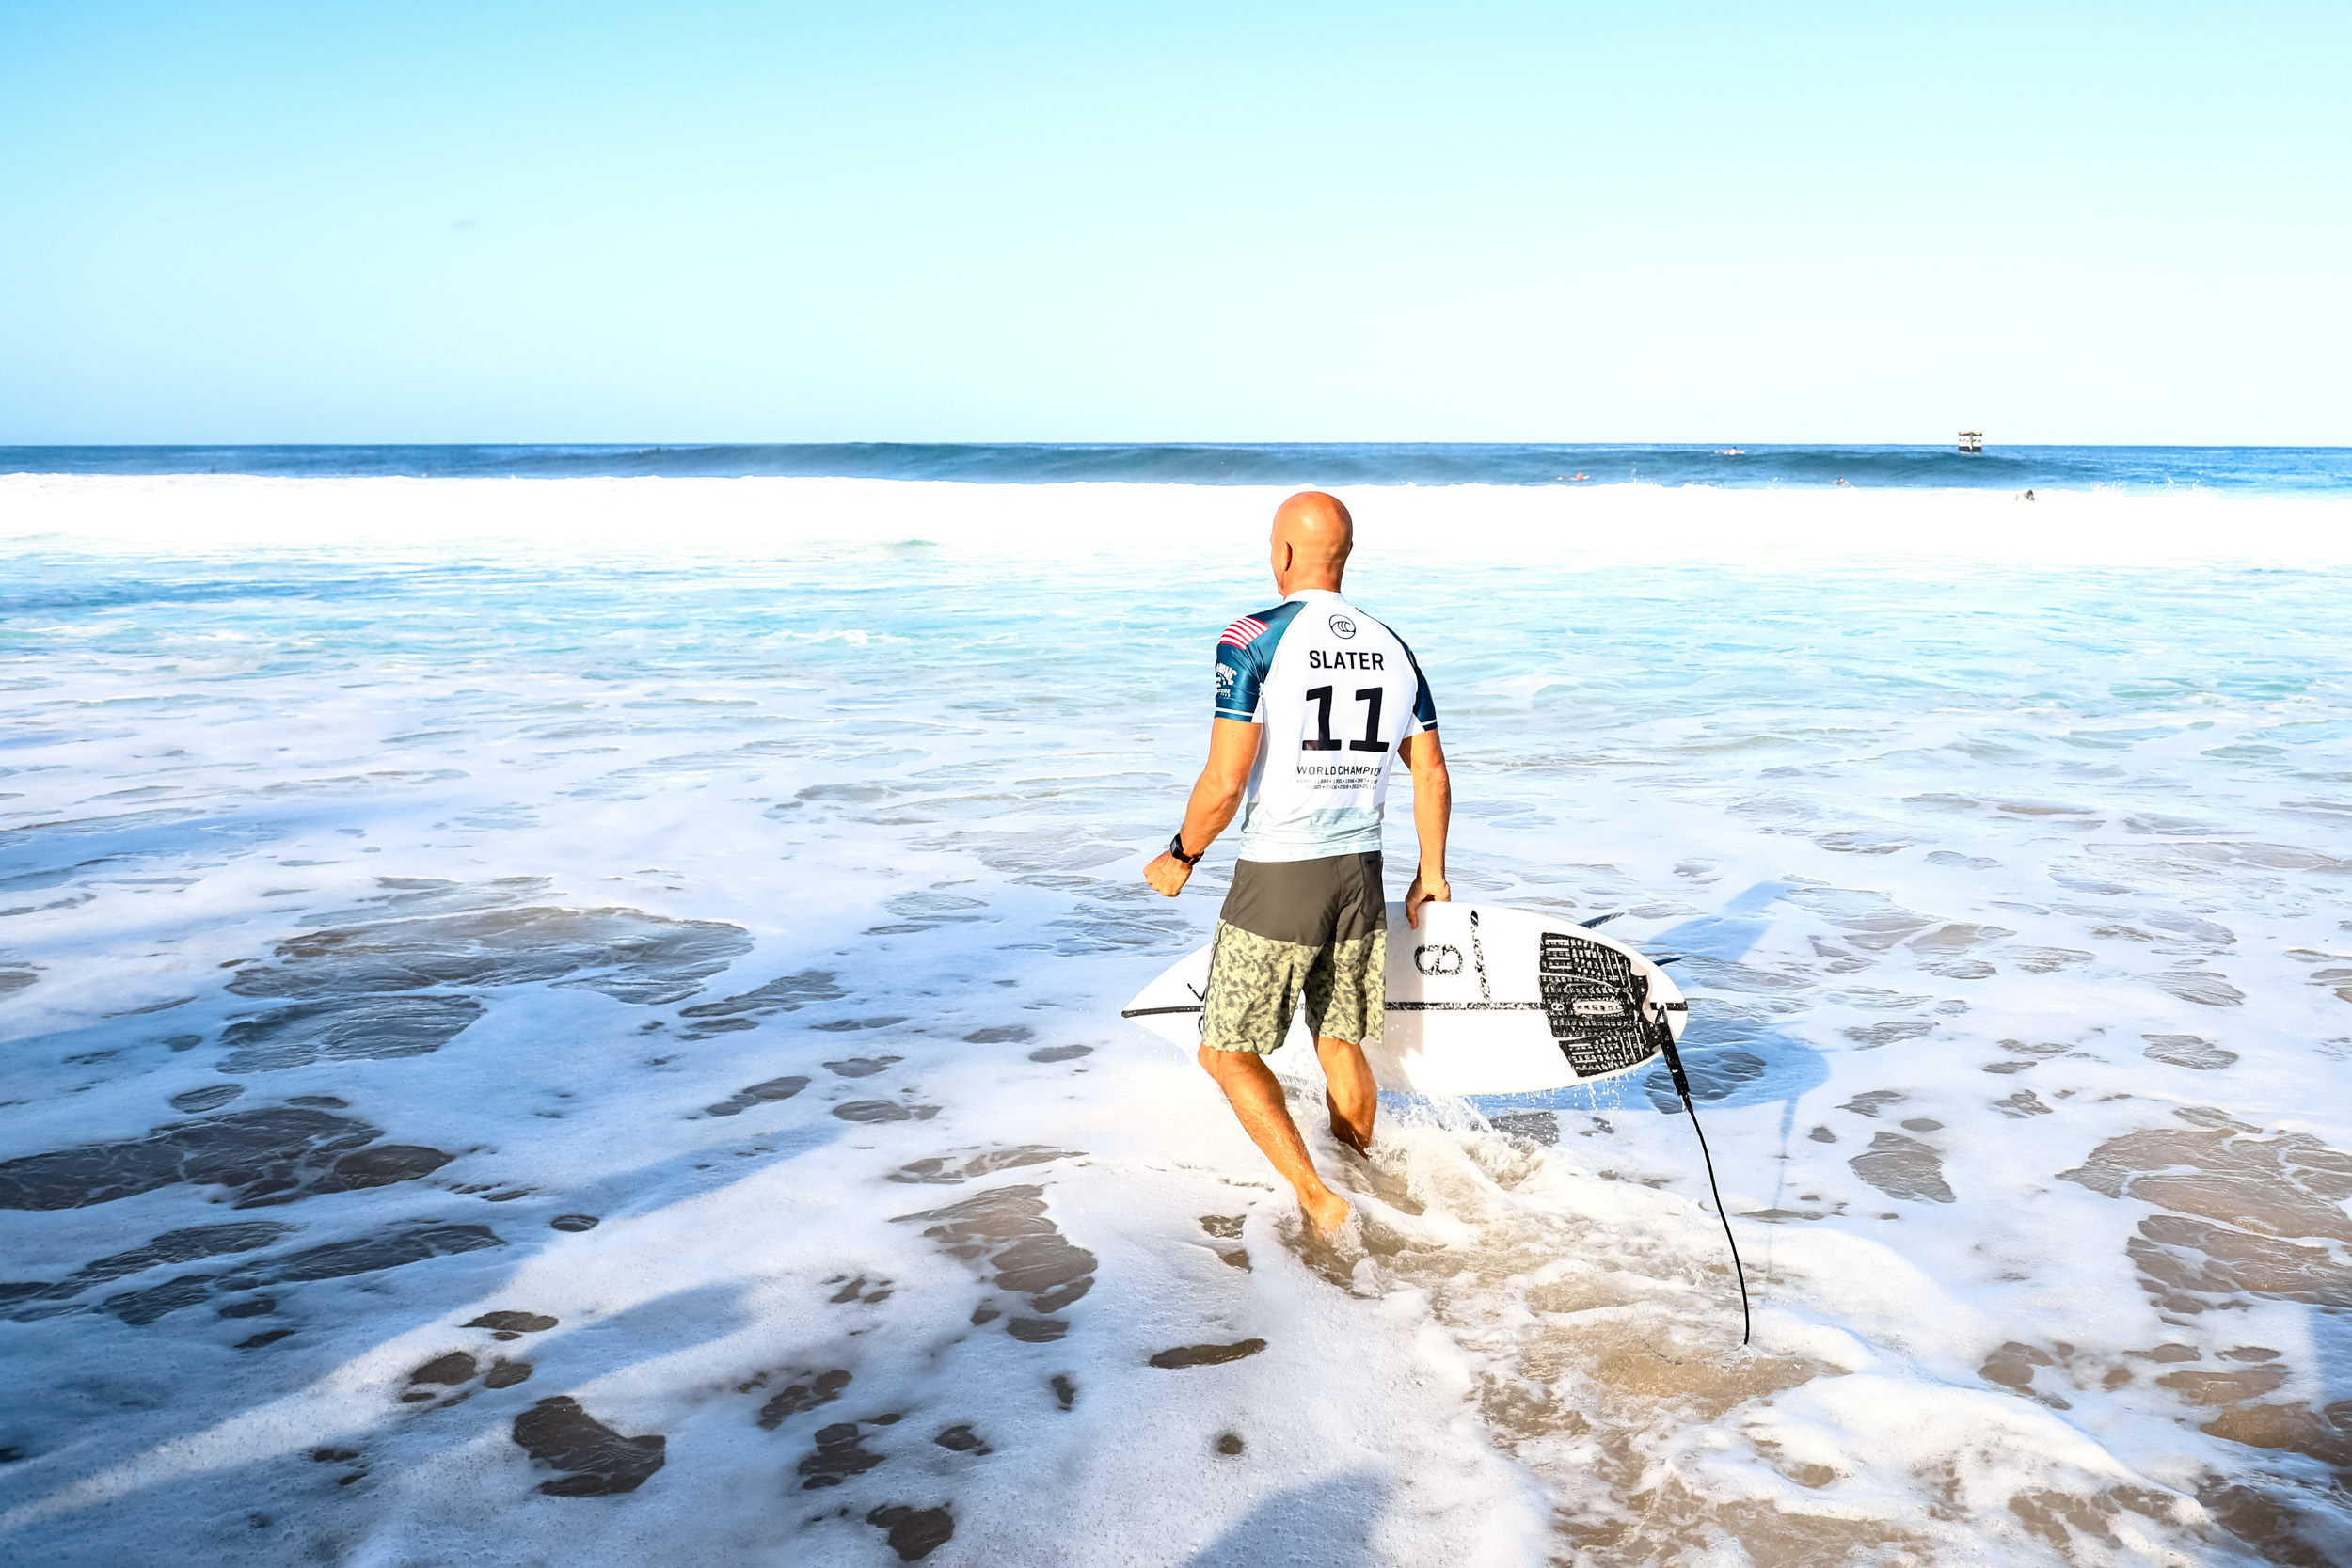 Kelly Slater Wins Vans Triple Crown of Surfing, JJF Claims ... on del taco application printable out, vans job application 2015, vans application for employment, vans career application, vans store job application, vans off the wall application,